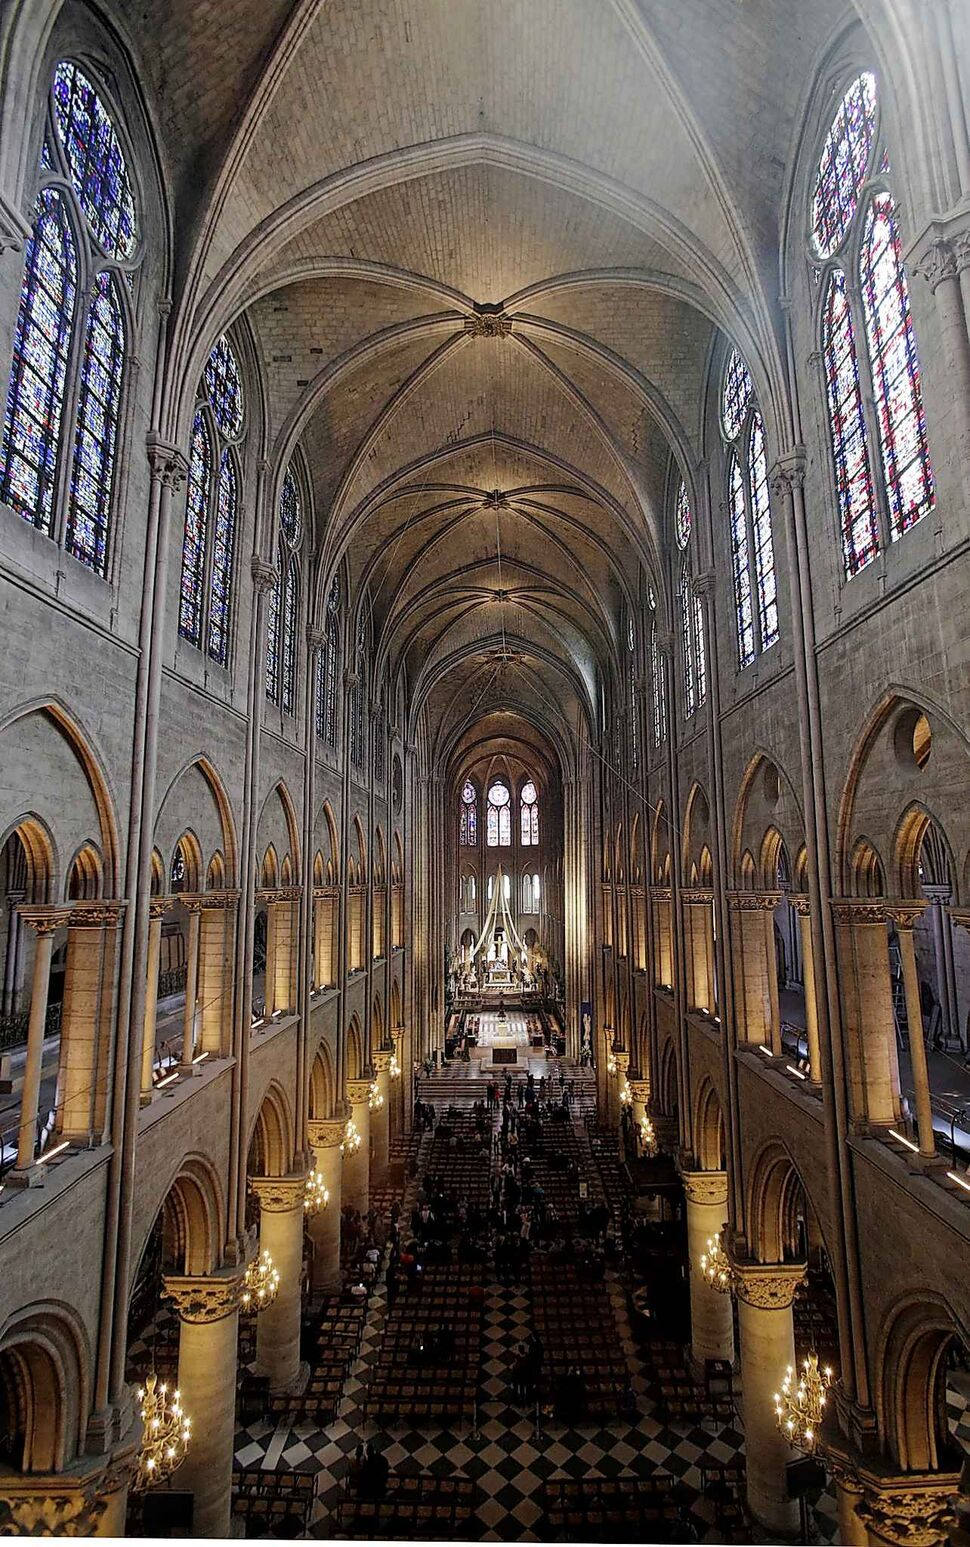 The view from the organ loft at Notre Dame cathedral in 2018, when the organ was refurbished for the cathedral's 850th anniversary. (Christophe Ena / The Associated Press files)